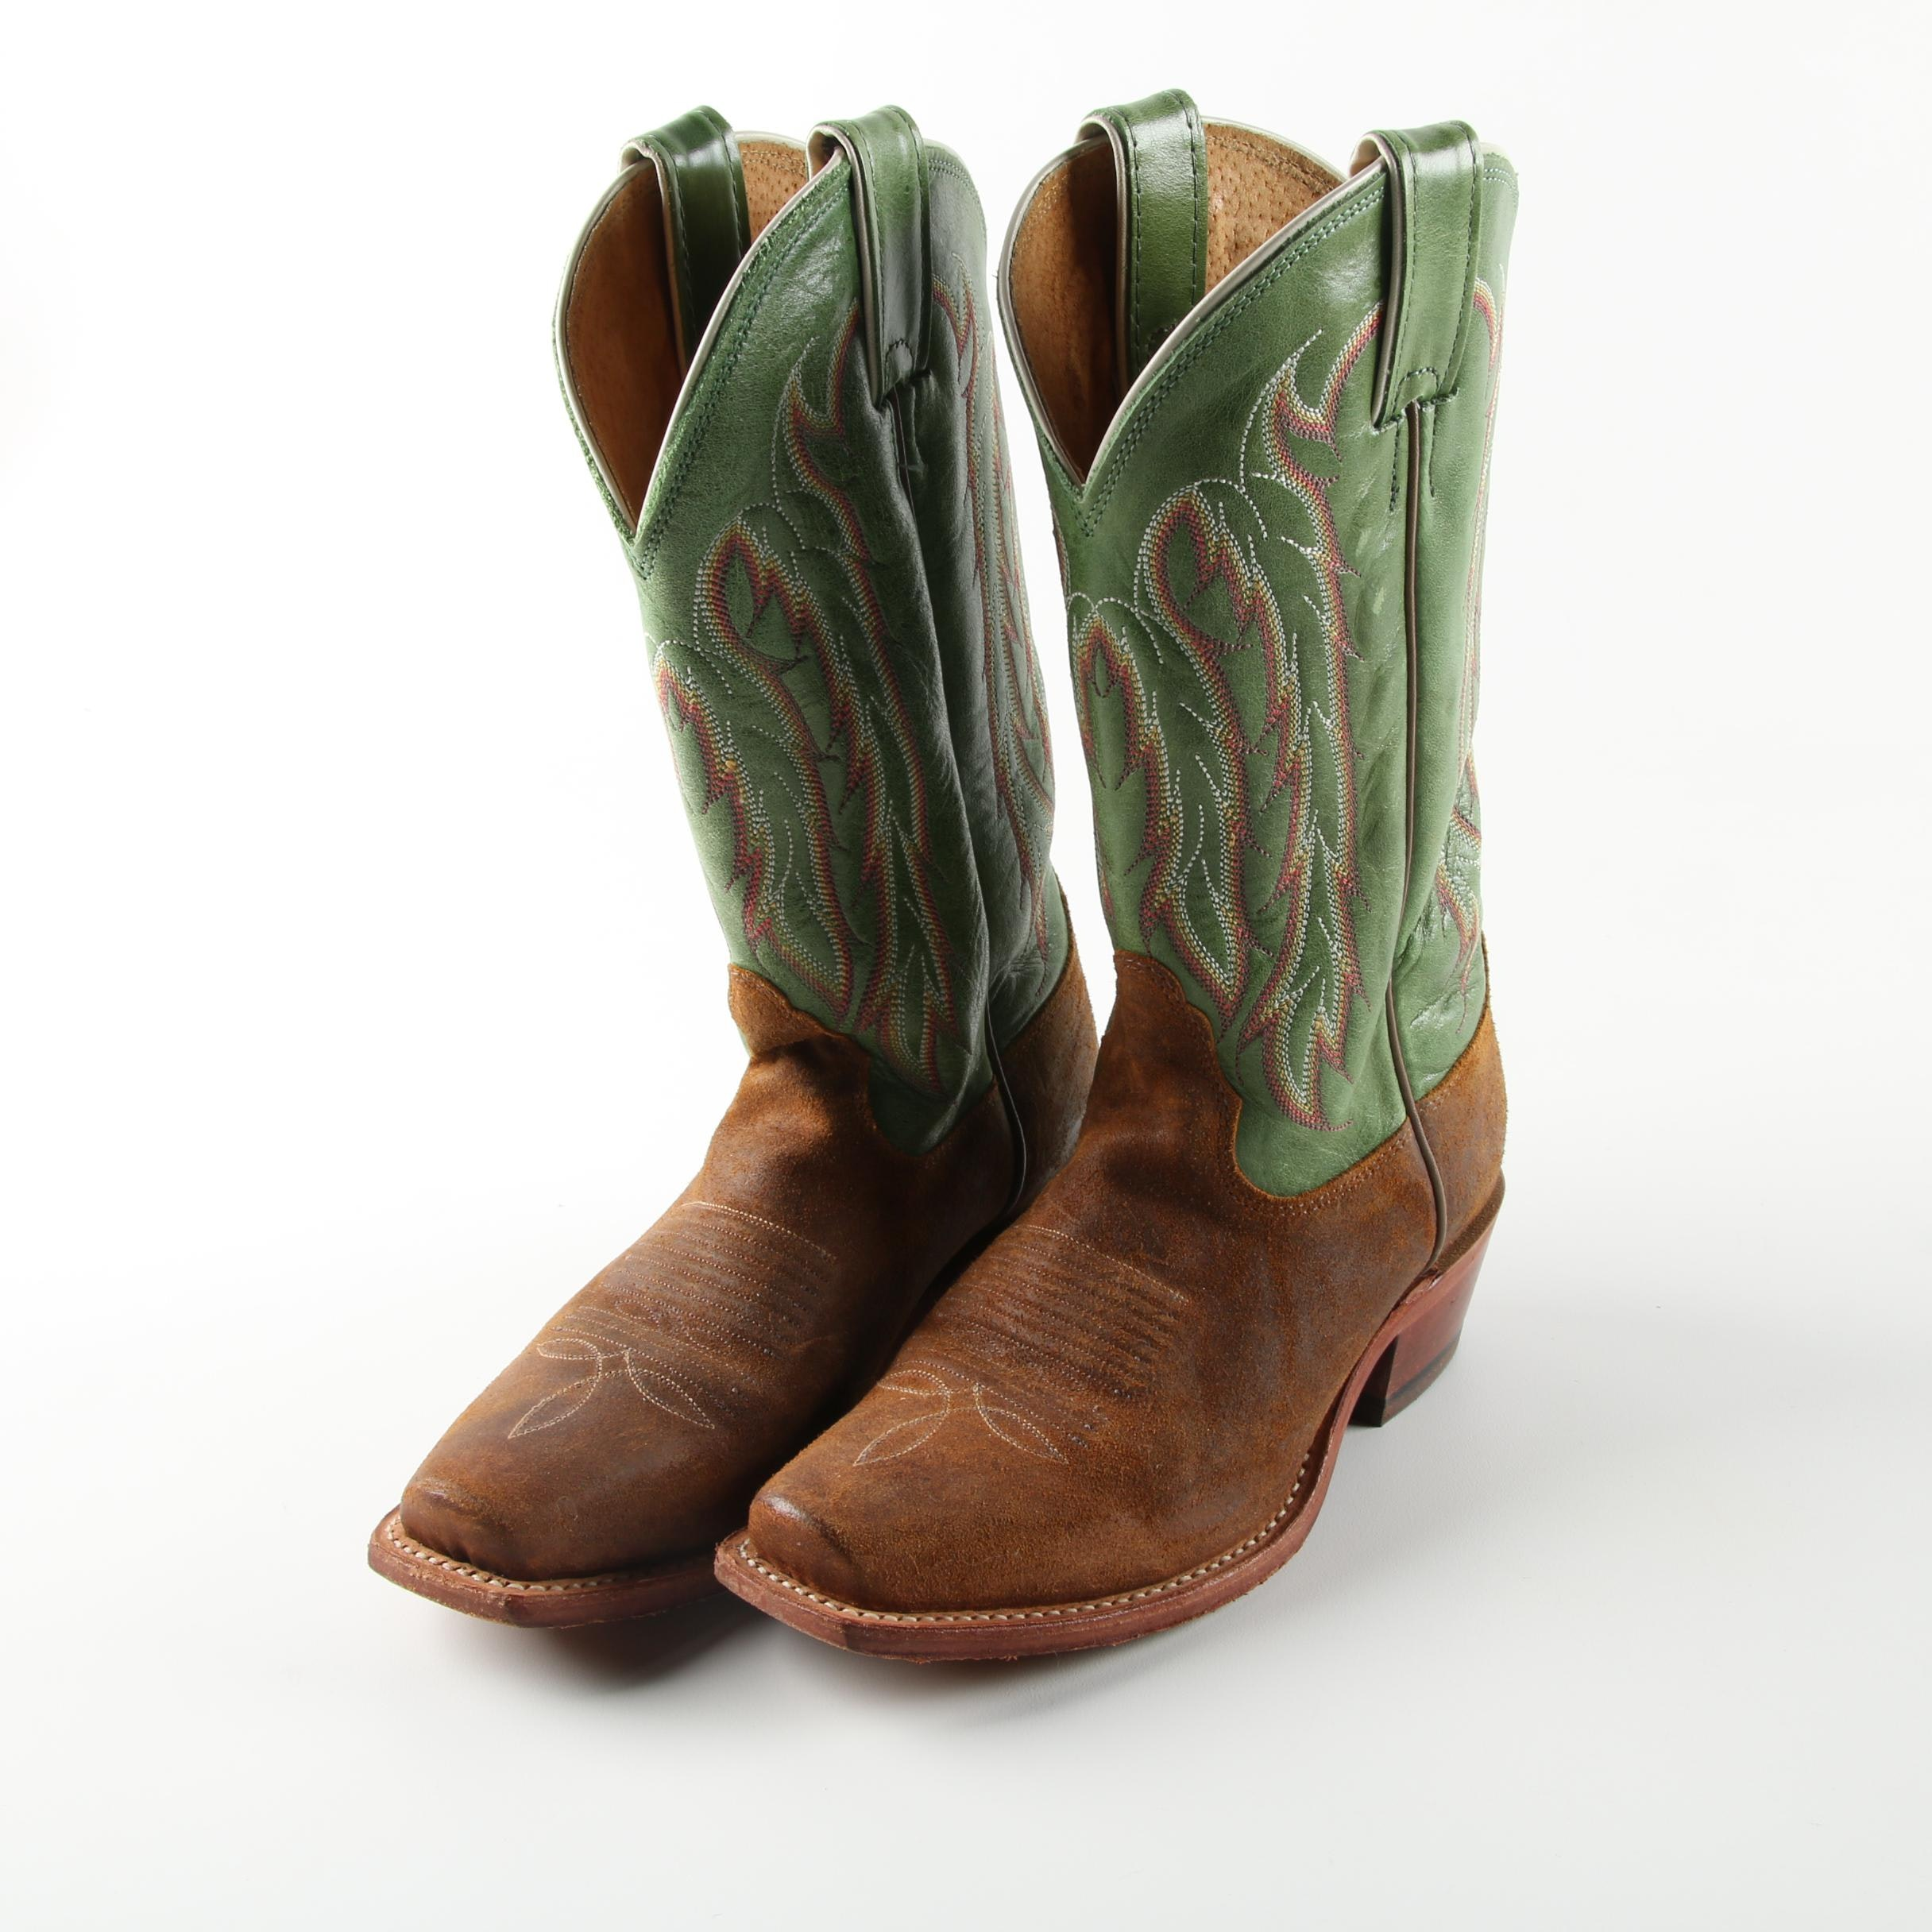 Women's Nocona Green and Brown Leather Western Square Toe Boots